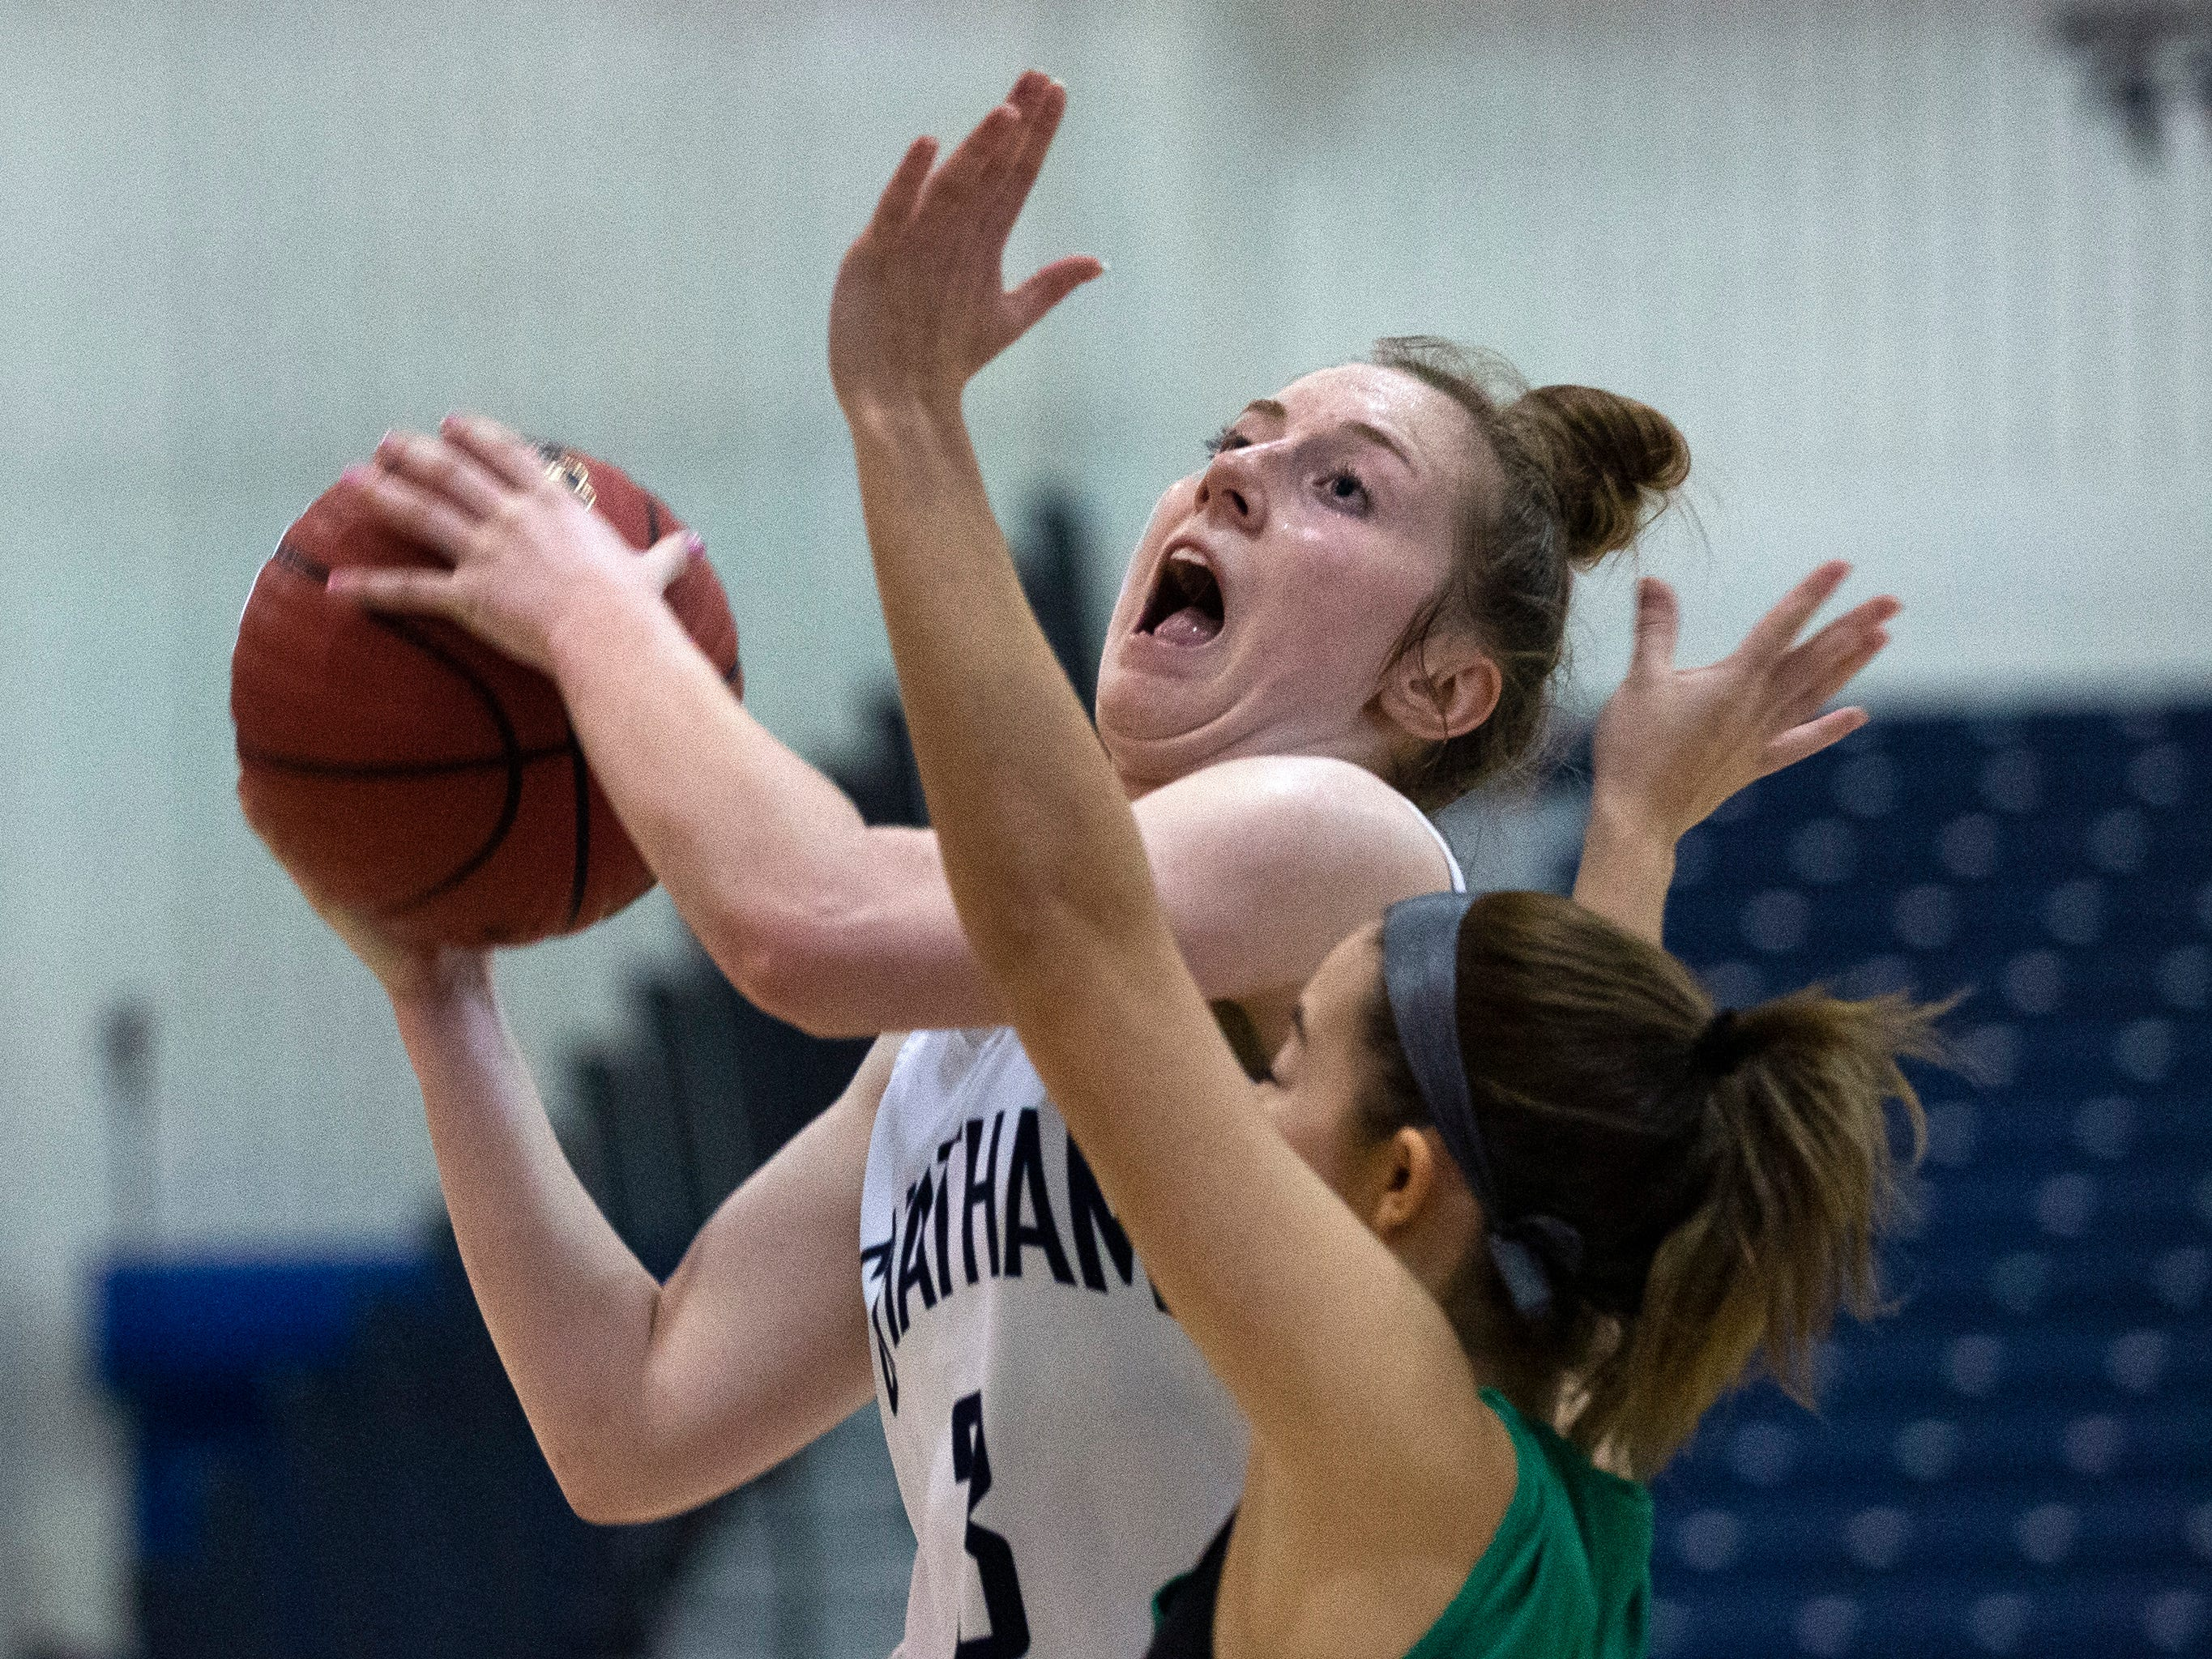 Michaela Ford, Chatham, goes up with shot as time runs down on game. Chatham Girls Basketball vs Mainland in Girls Group III Final in Toms River on March 10, 2019.